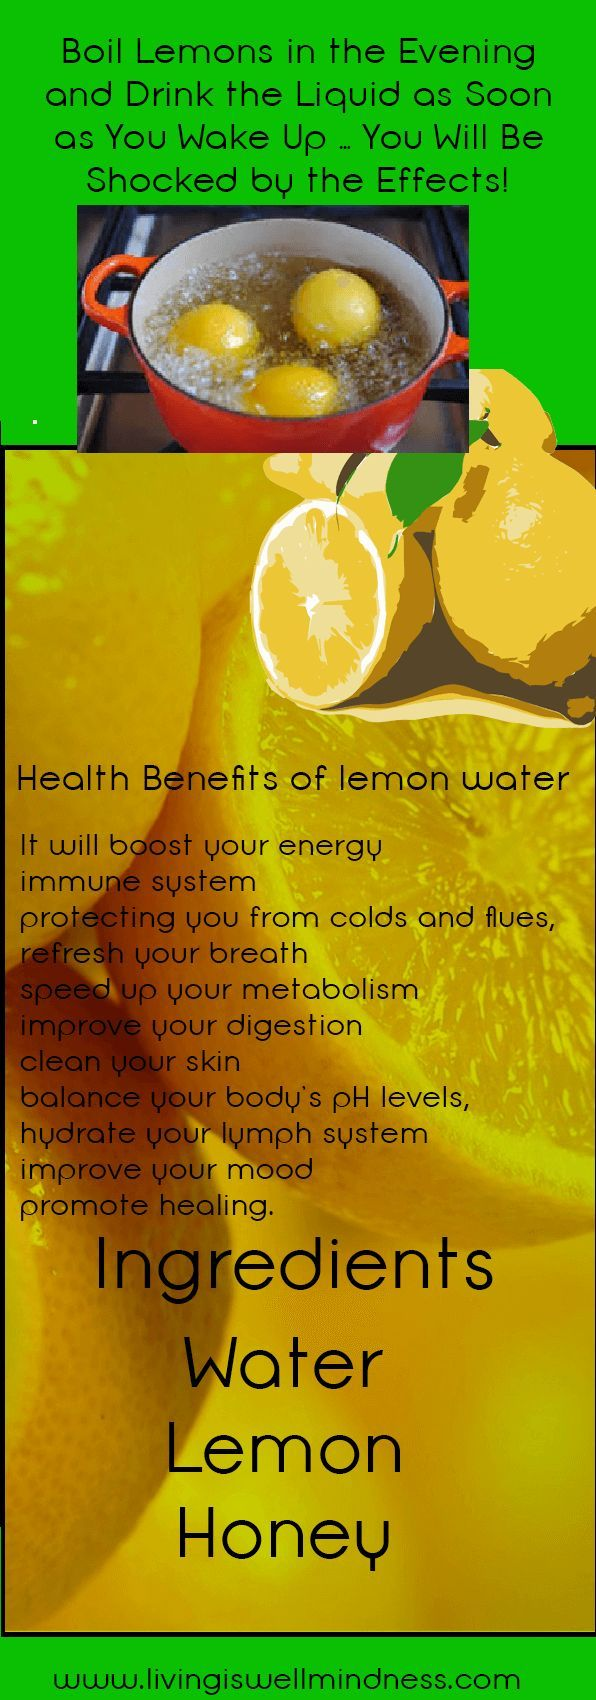 Boil Lemons in the Evening and Drink the Liquid as Soon as You Wake Up ... You Will Be Shocked by the Effects! - Living Wellmindness